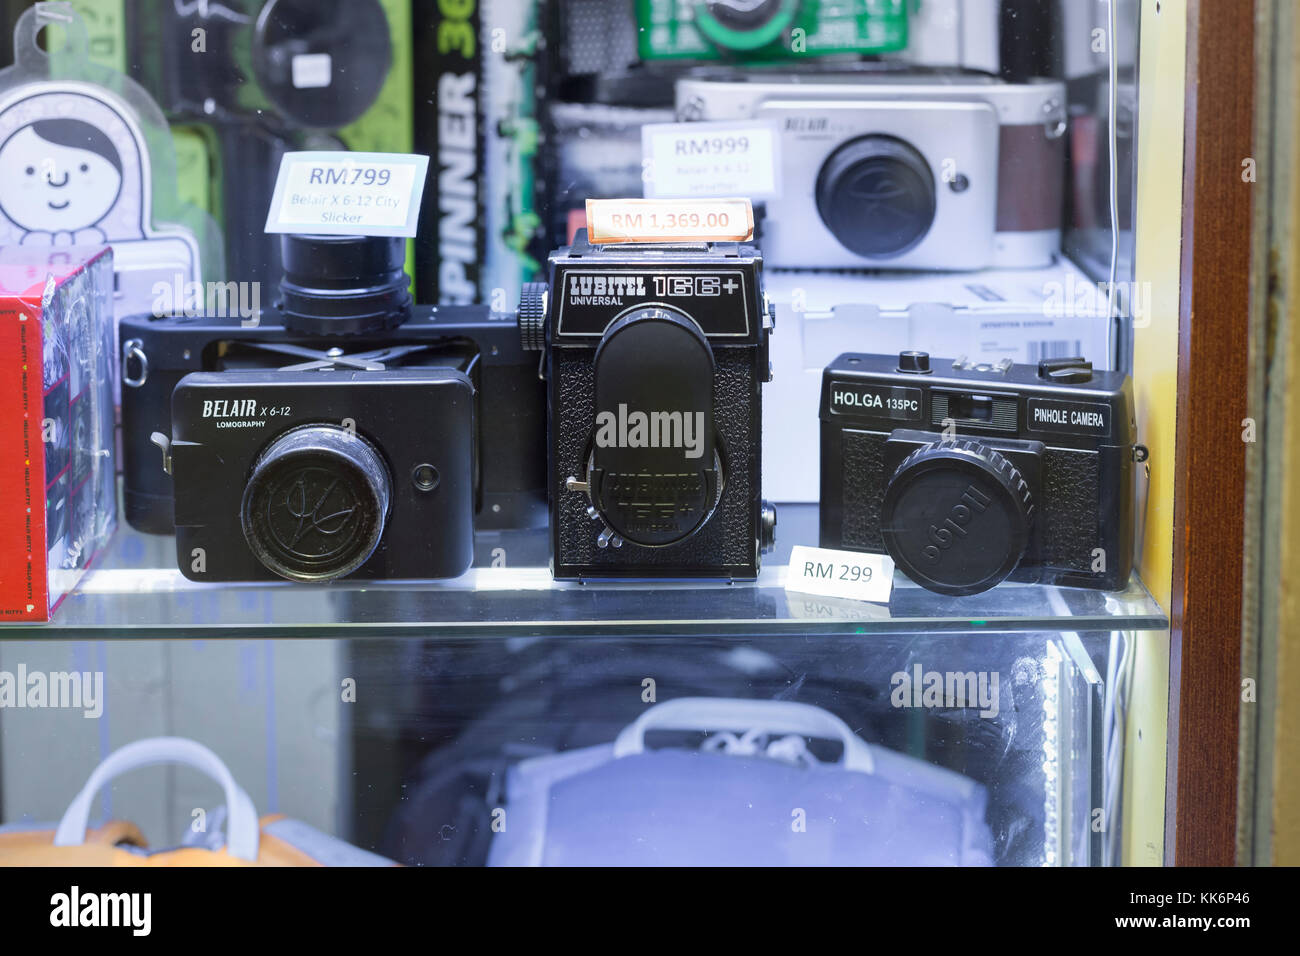 Old cameras on display - Stock Image